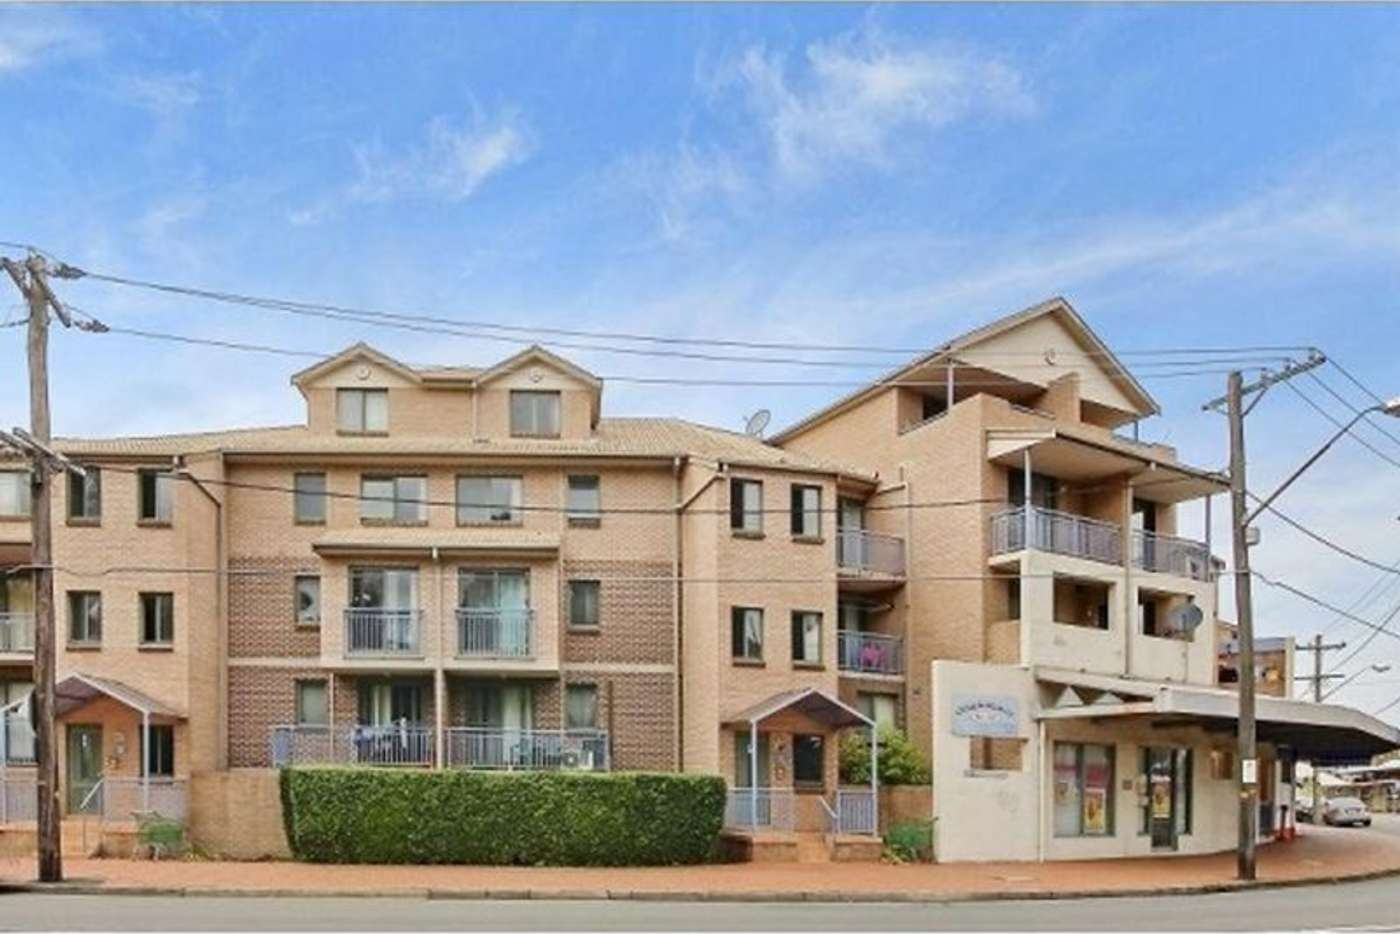 Main view of Homely apartment listing, 19/503-507 Wentworth Avenue, Toongabbie NSW 2146